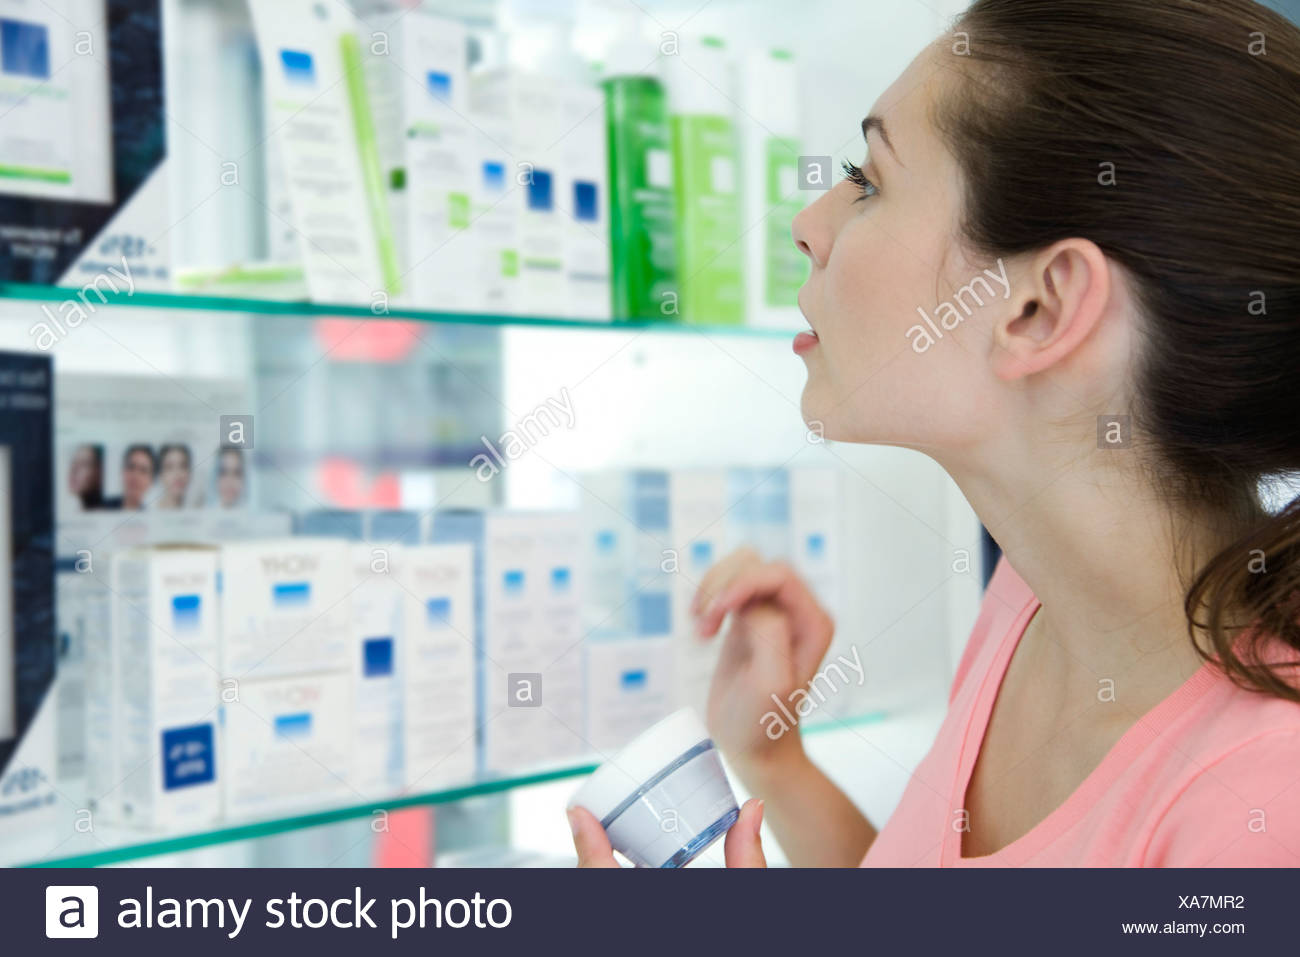 Young woman browsing beauty products in store - Stock Image